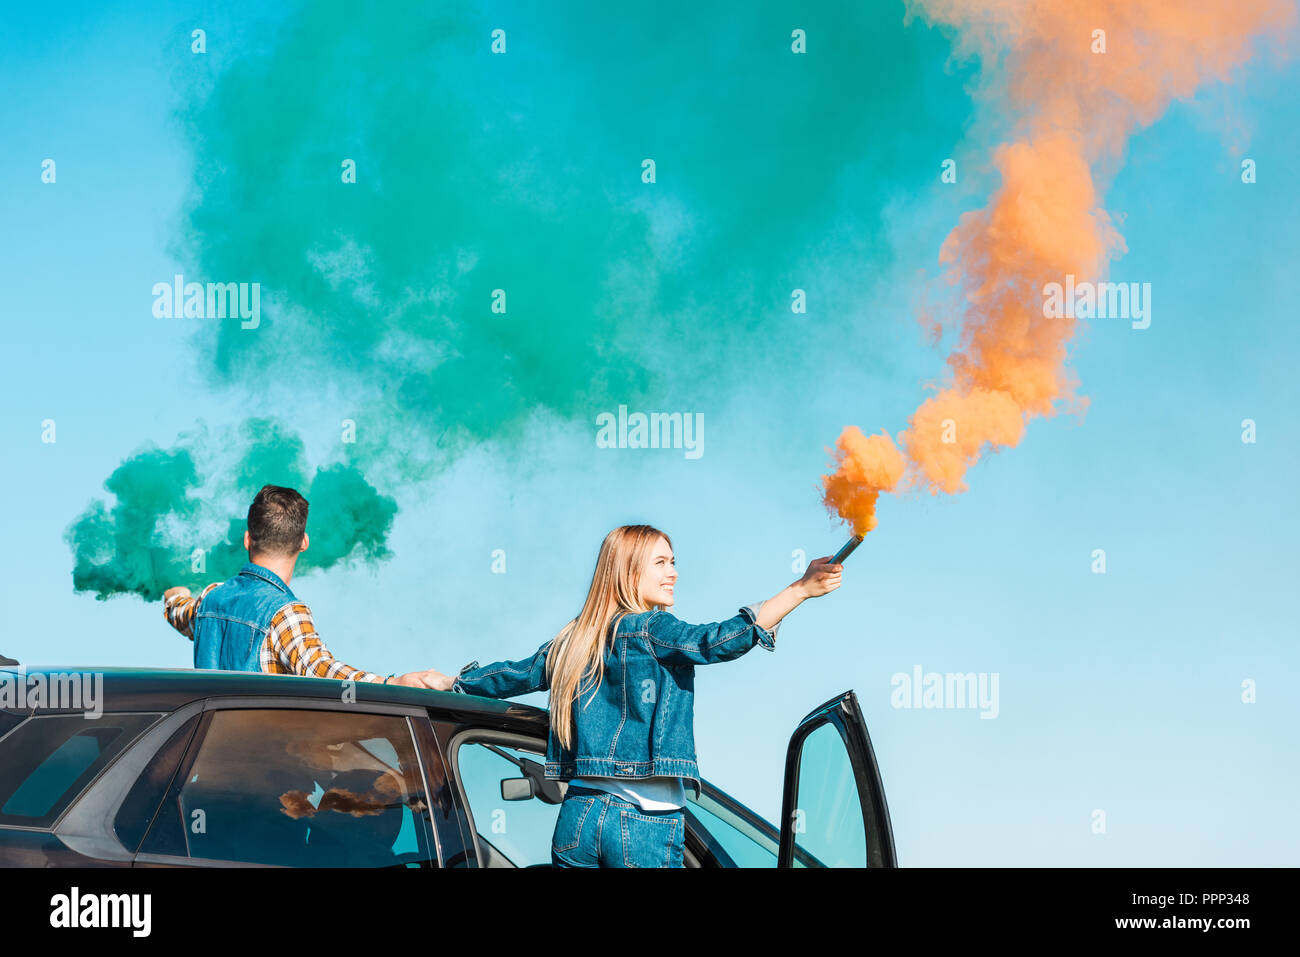 young couple standing on car and holding green and orange smoke bombs - Stock Image